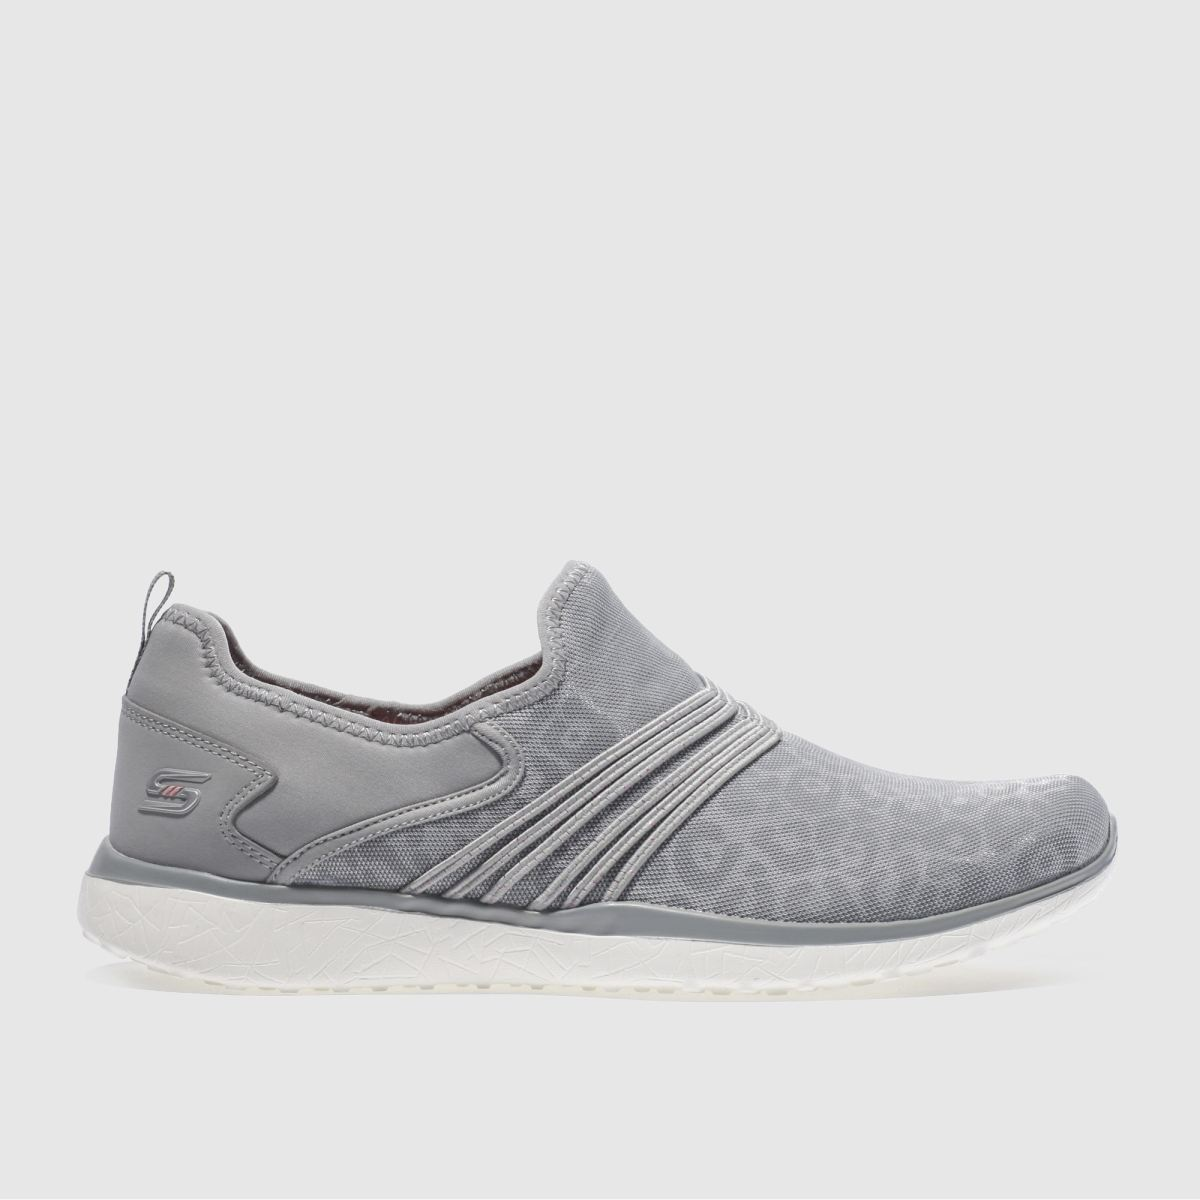 skechers grey microburst under wraps trainers